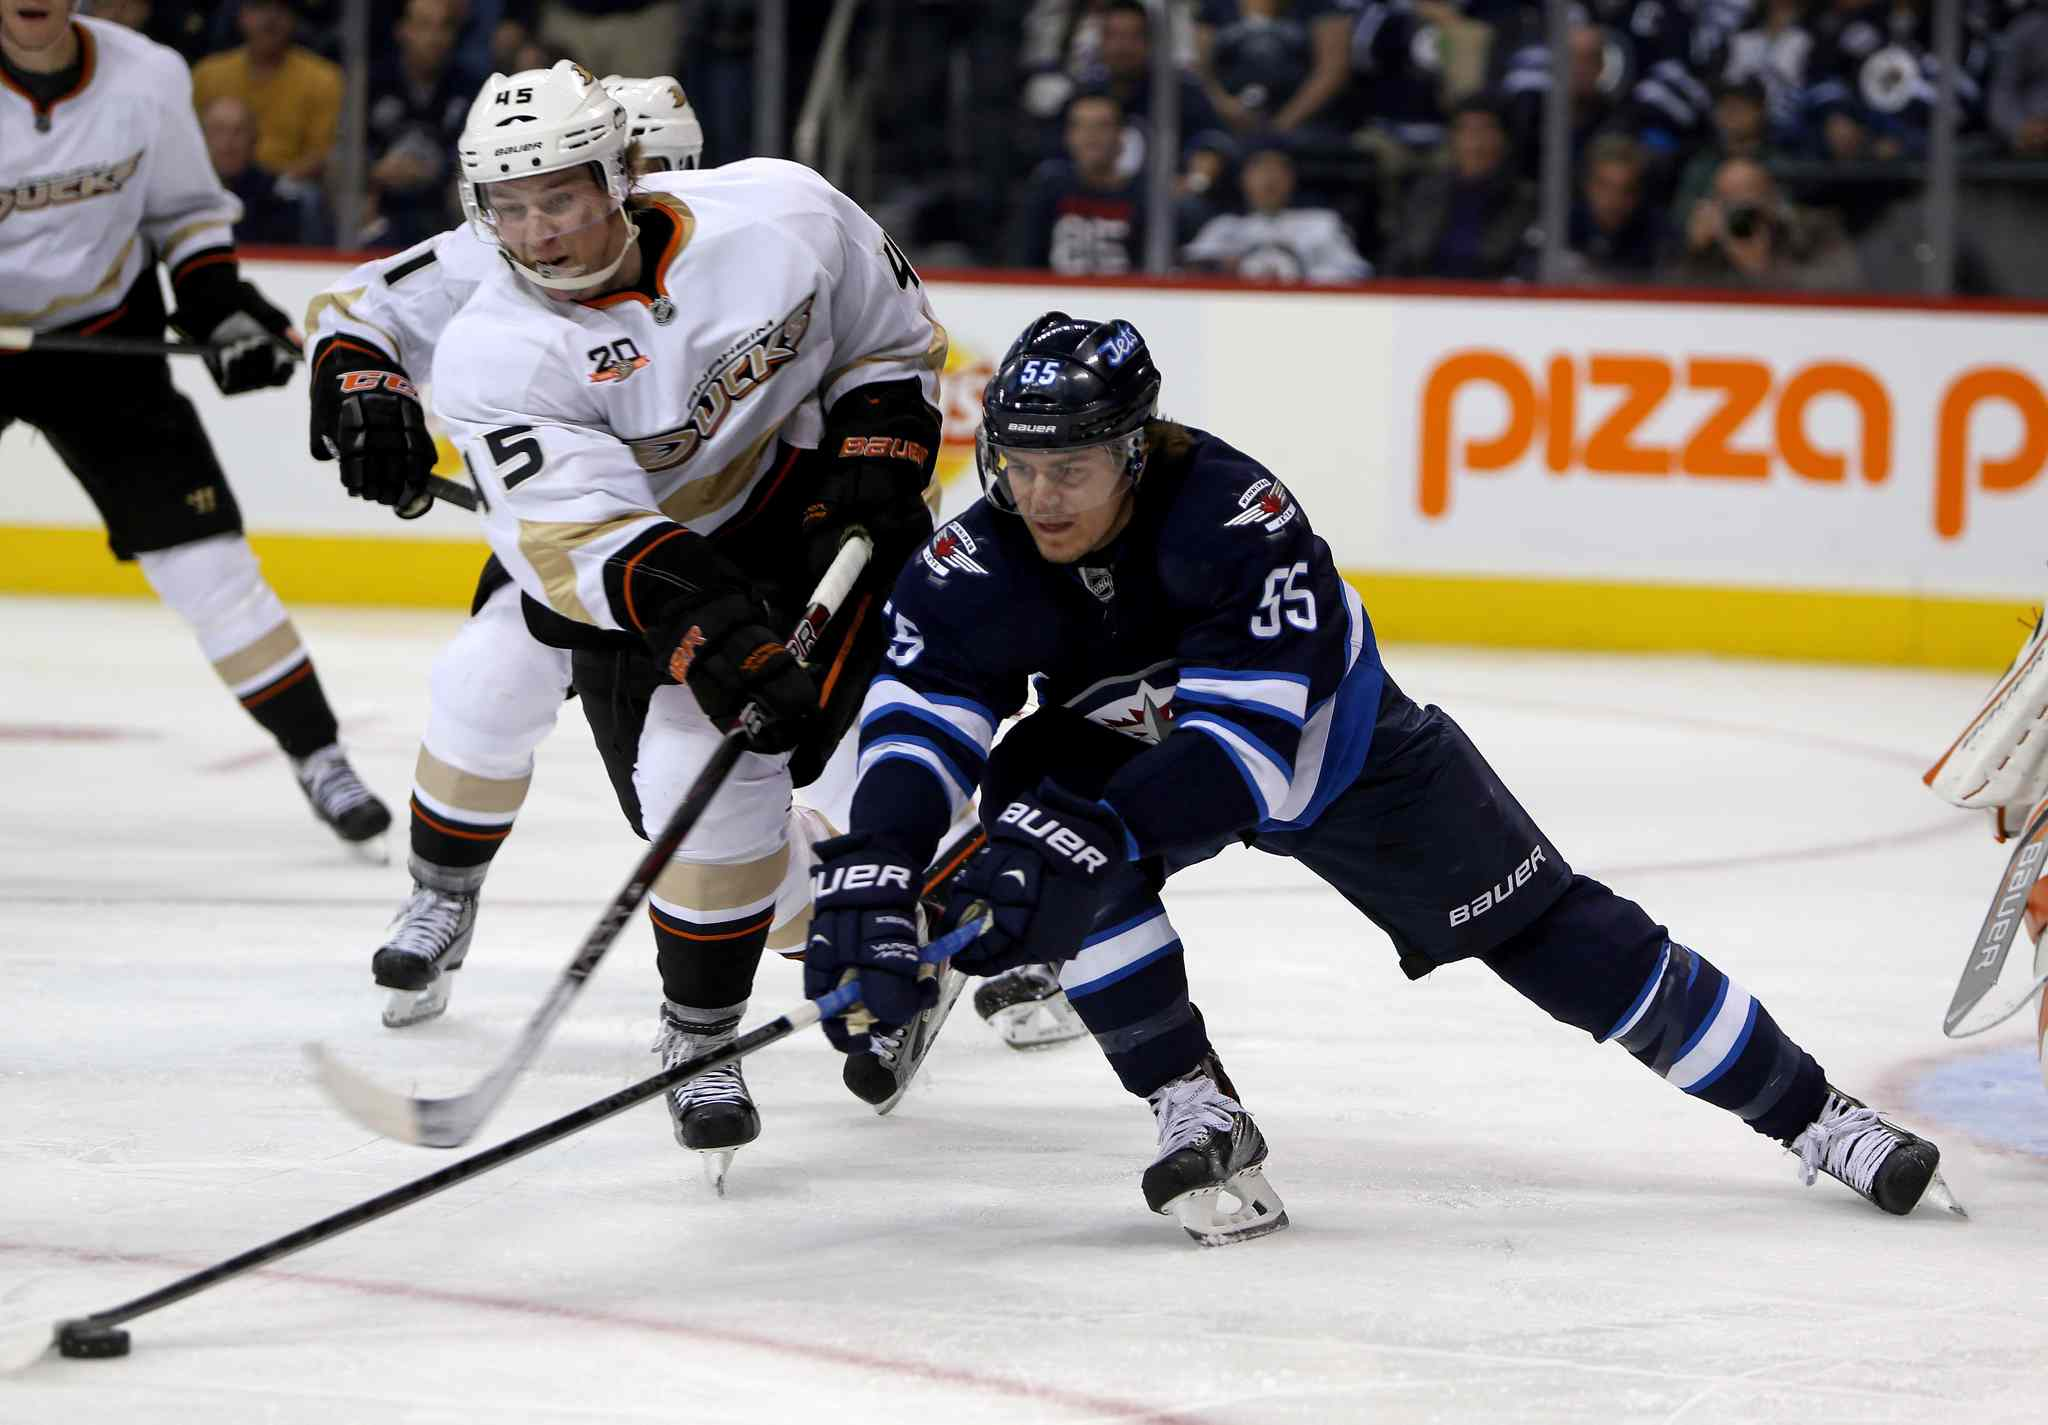 Anaheim Ducks' Sami Vatanen battles with Winnipeg Jets' Mark Scheifele in the second period.